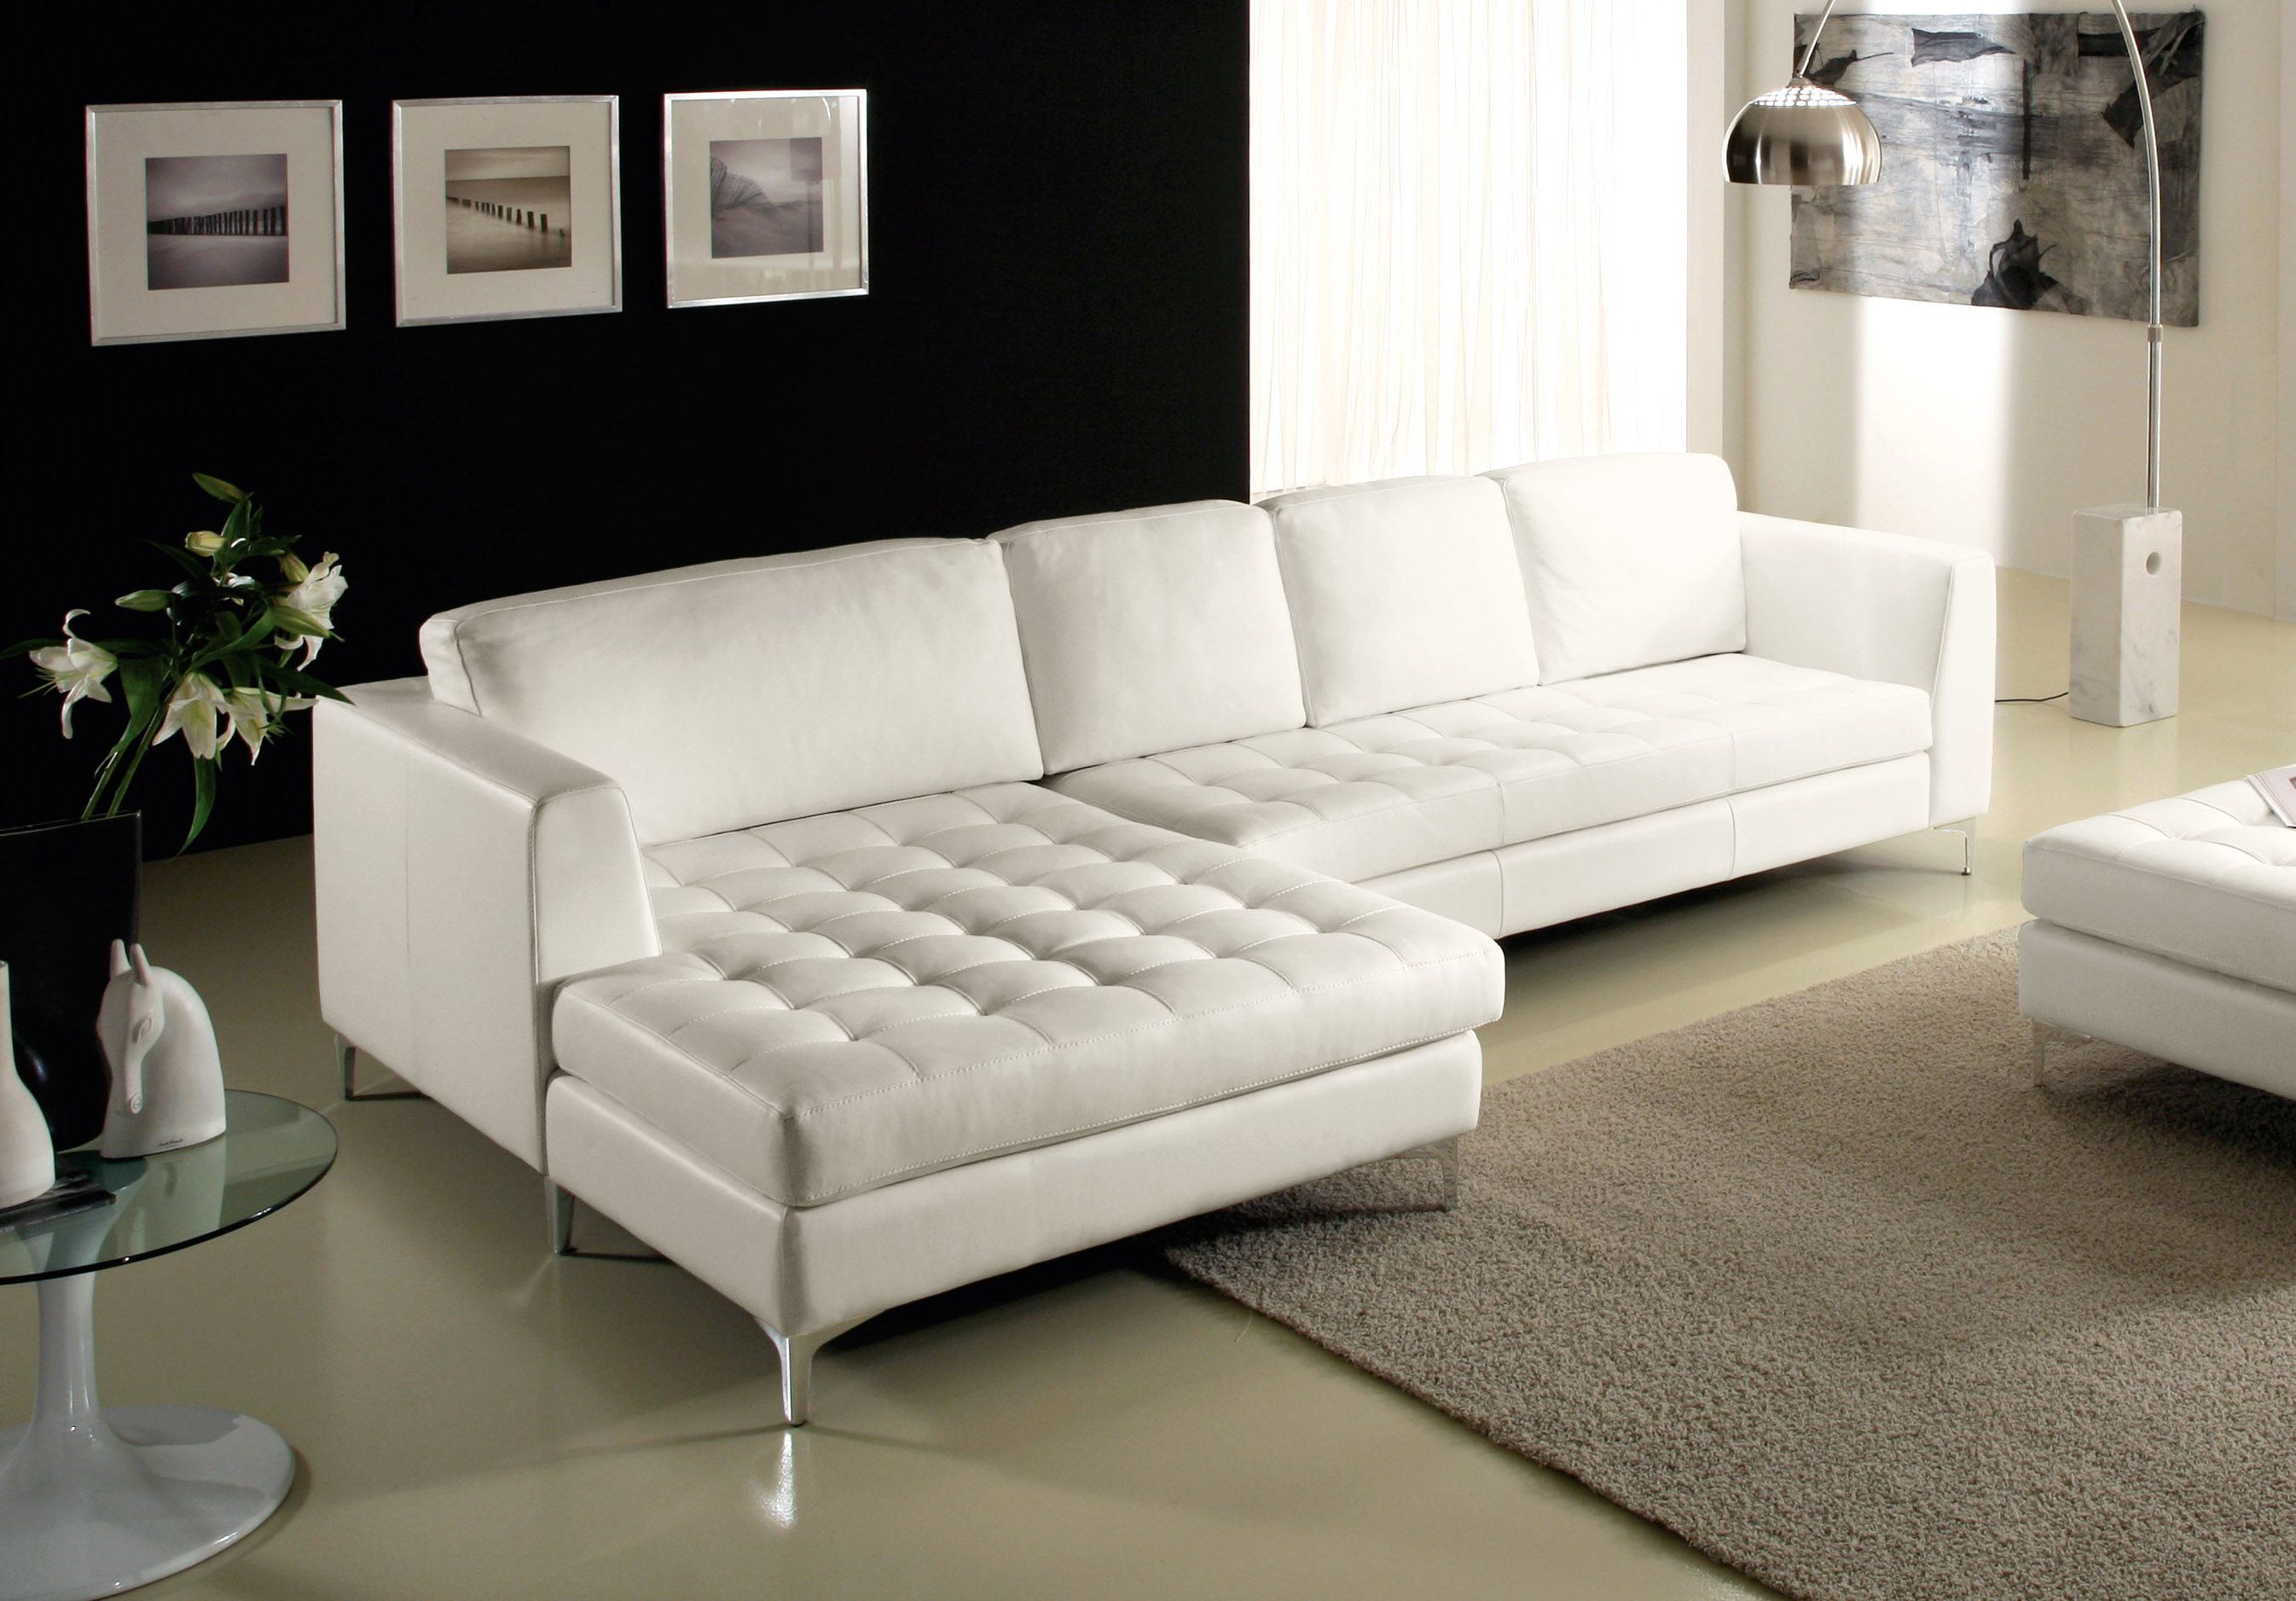 Fabio And Co Is Proud To Offer You 100 Genuine Italian Sofas Over 200 Exclusive Models To Choose From Modern Leather Furniture Furniture Leather Furniture